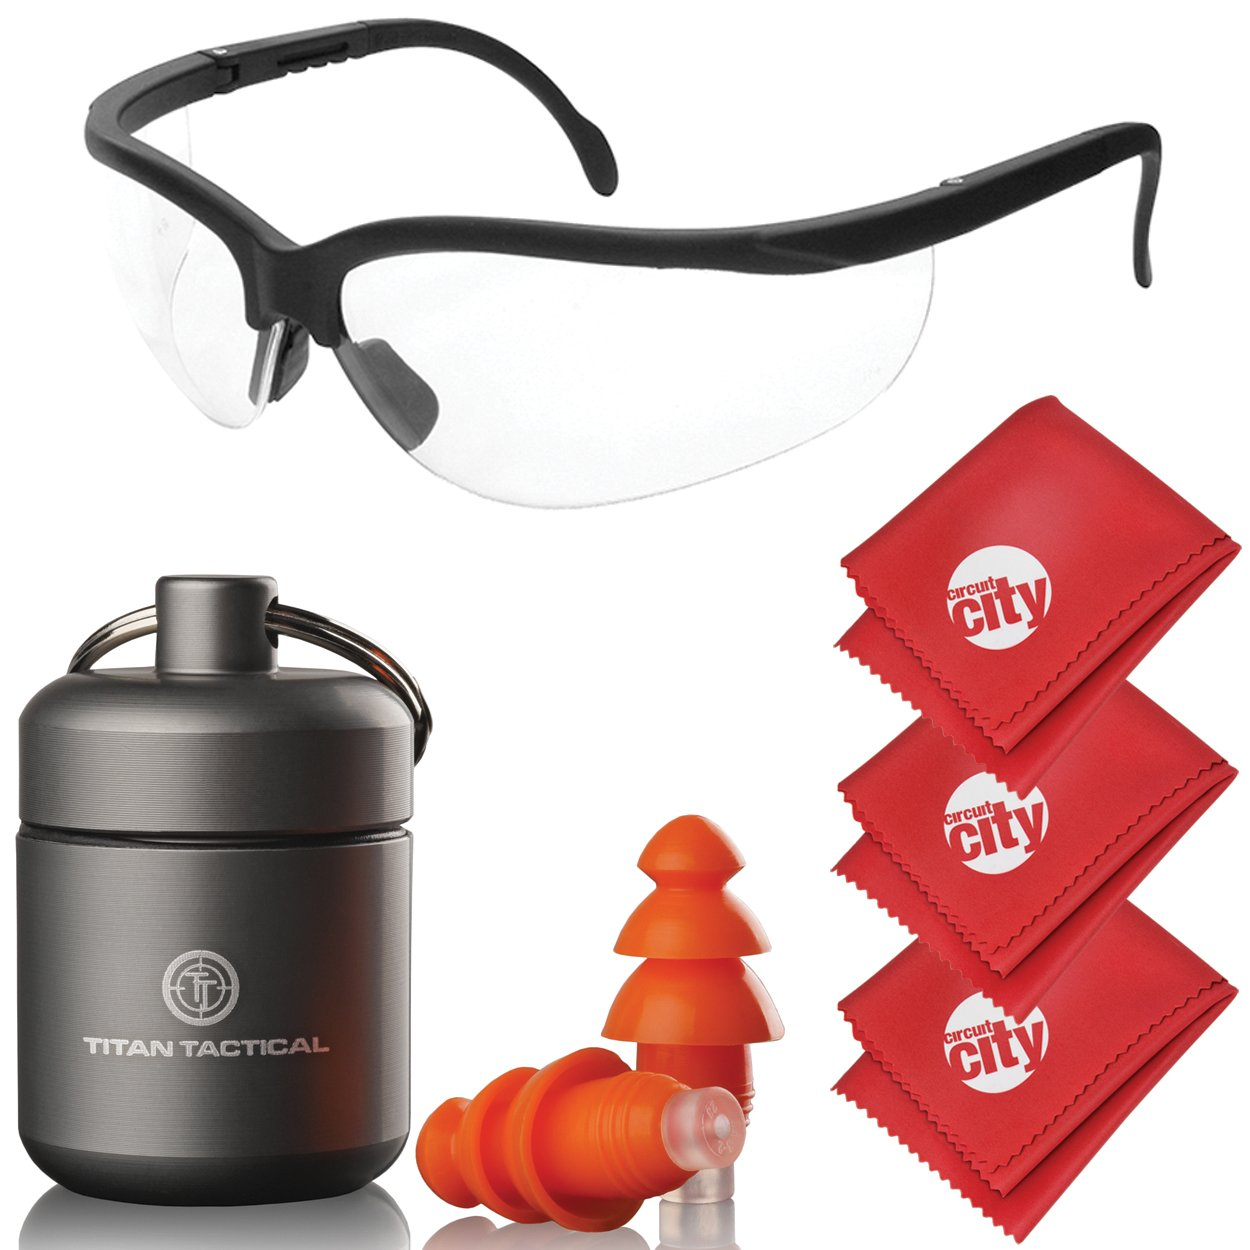 Titan Tactical Eyes + Ear Protection Kit w/29NRR Reusable Shooting Ear Plugs + Mil-Spec Clear Range Ballistic Glasses (for Normal + Small Ear Canals) by Titan Tactical